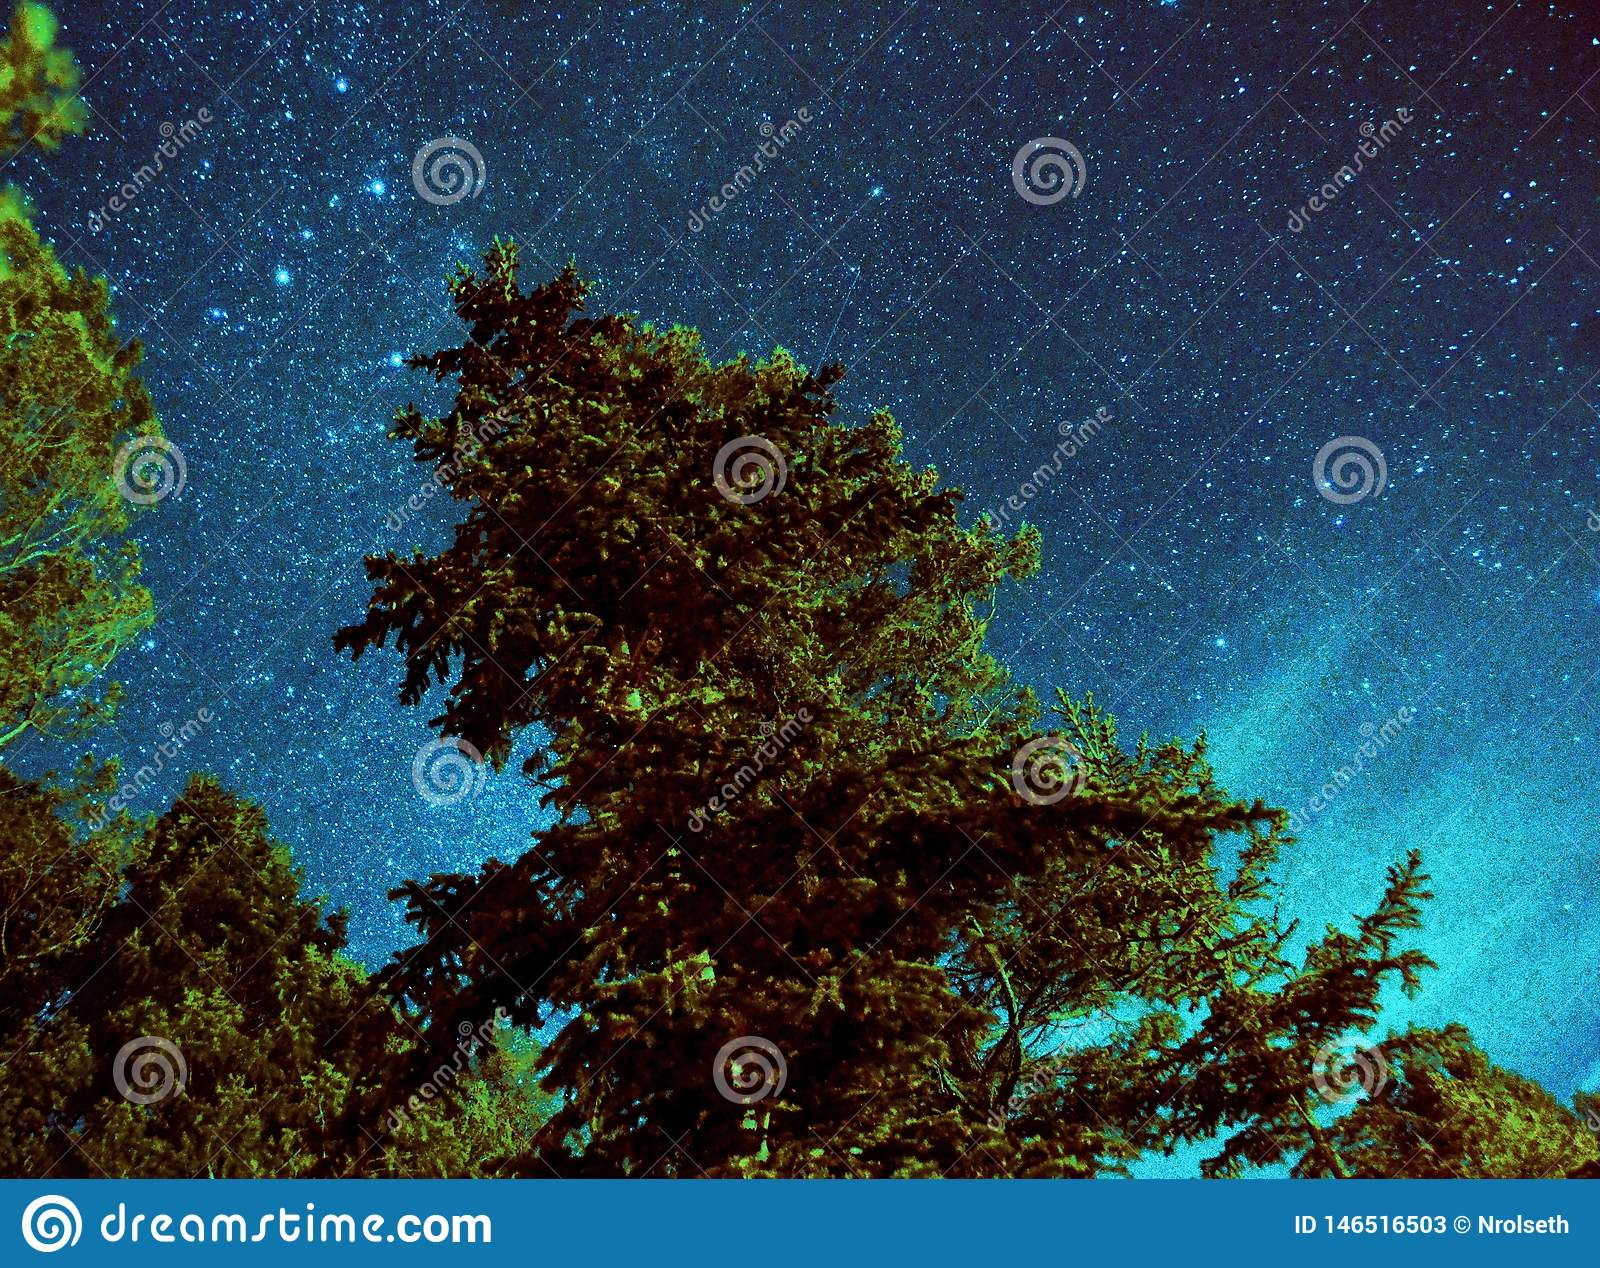 Night time tree with milky way